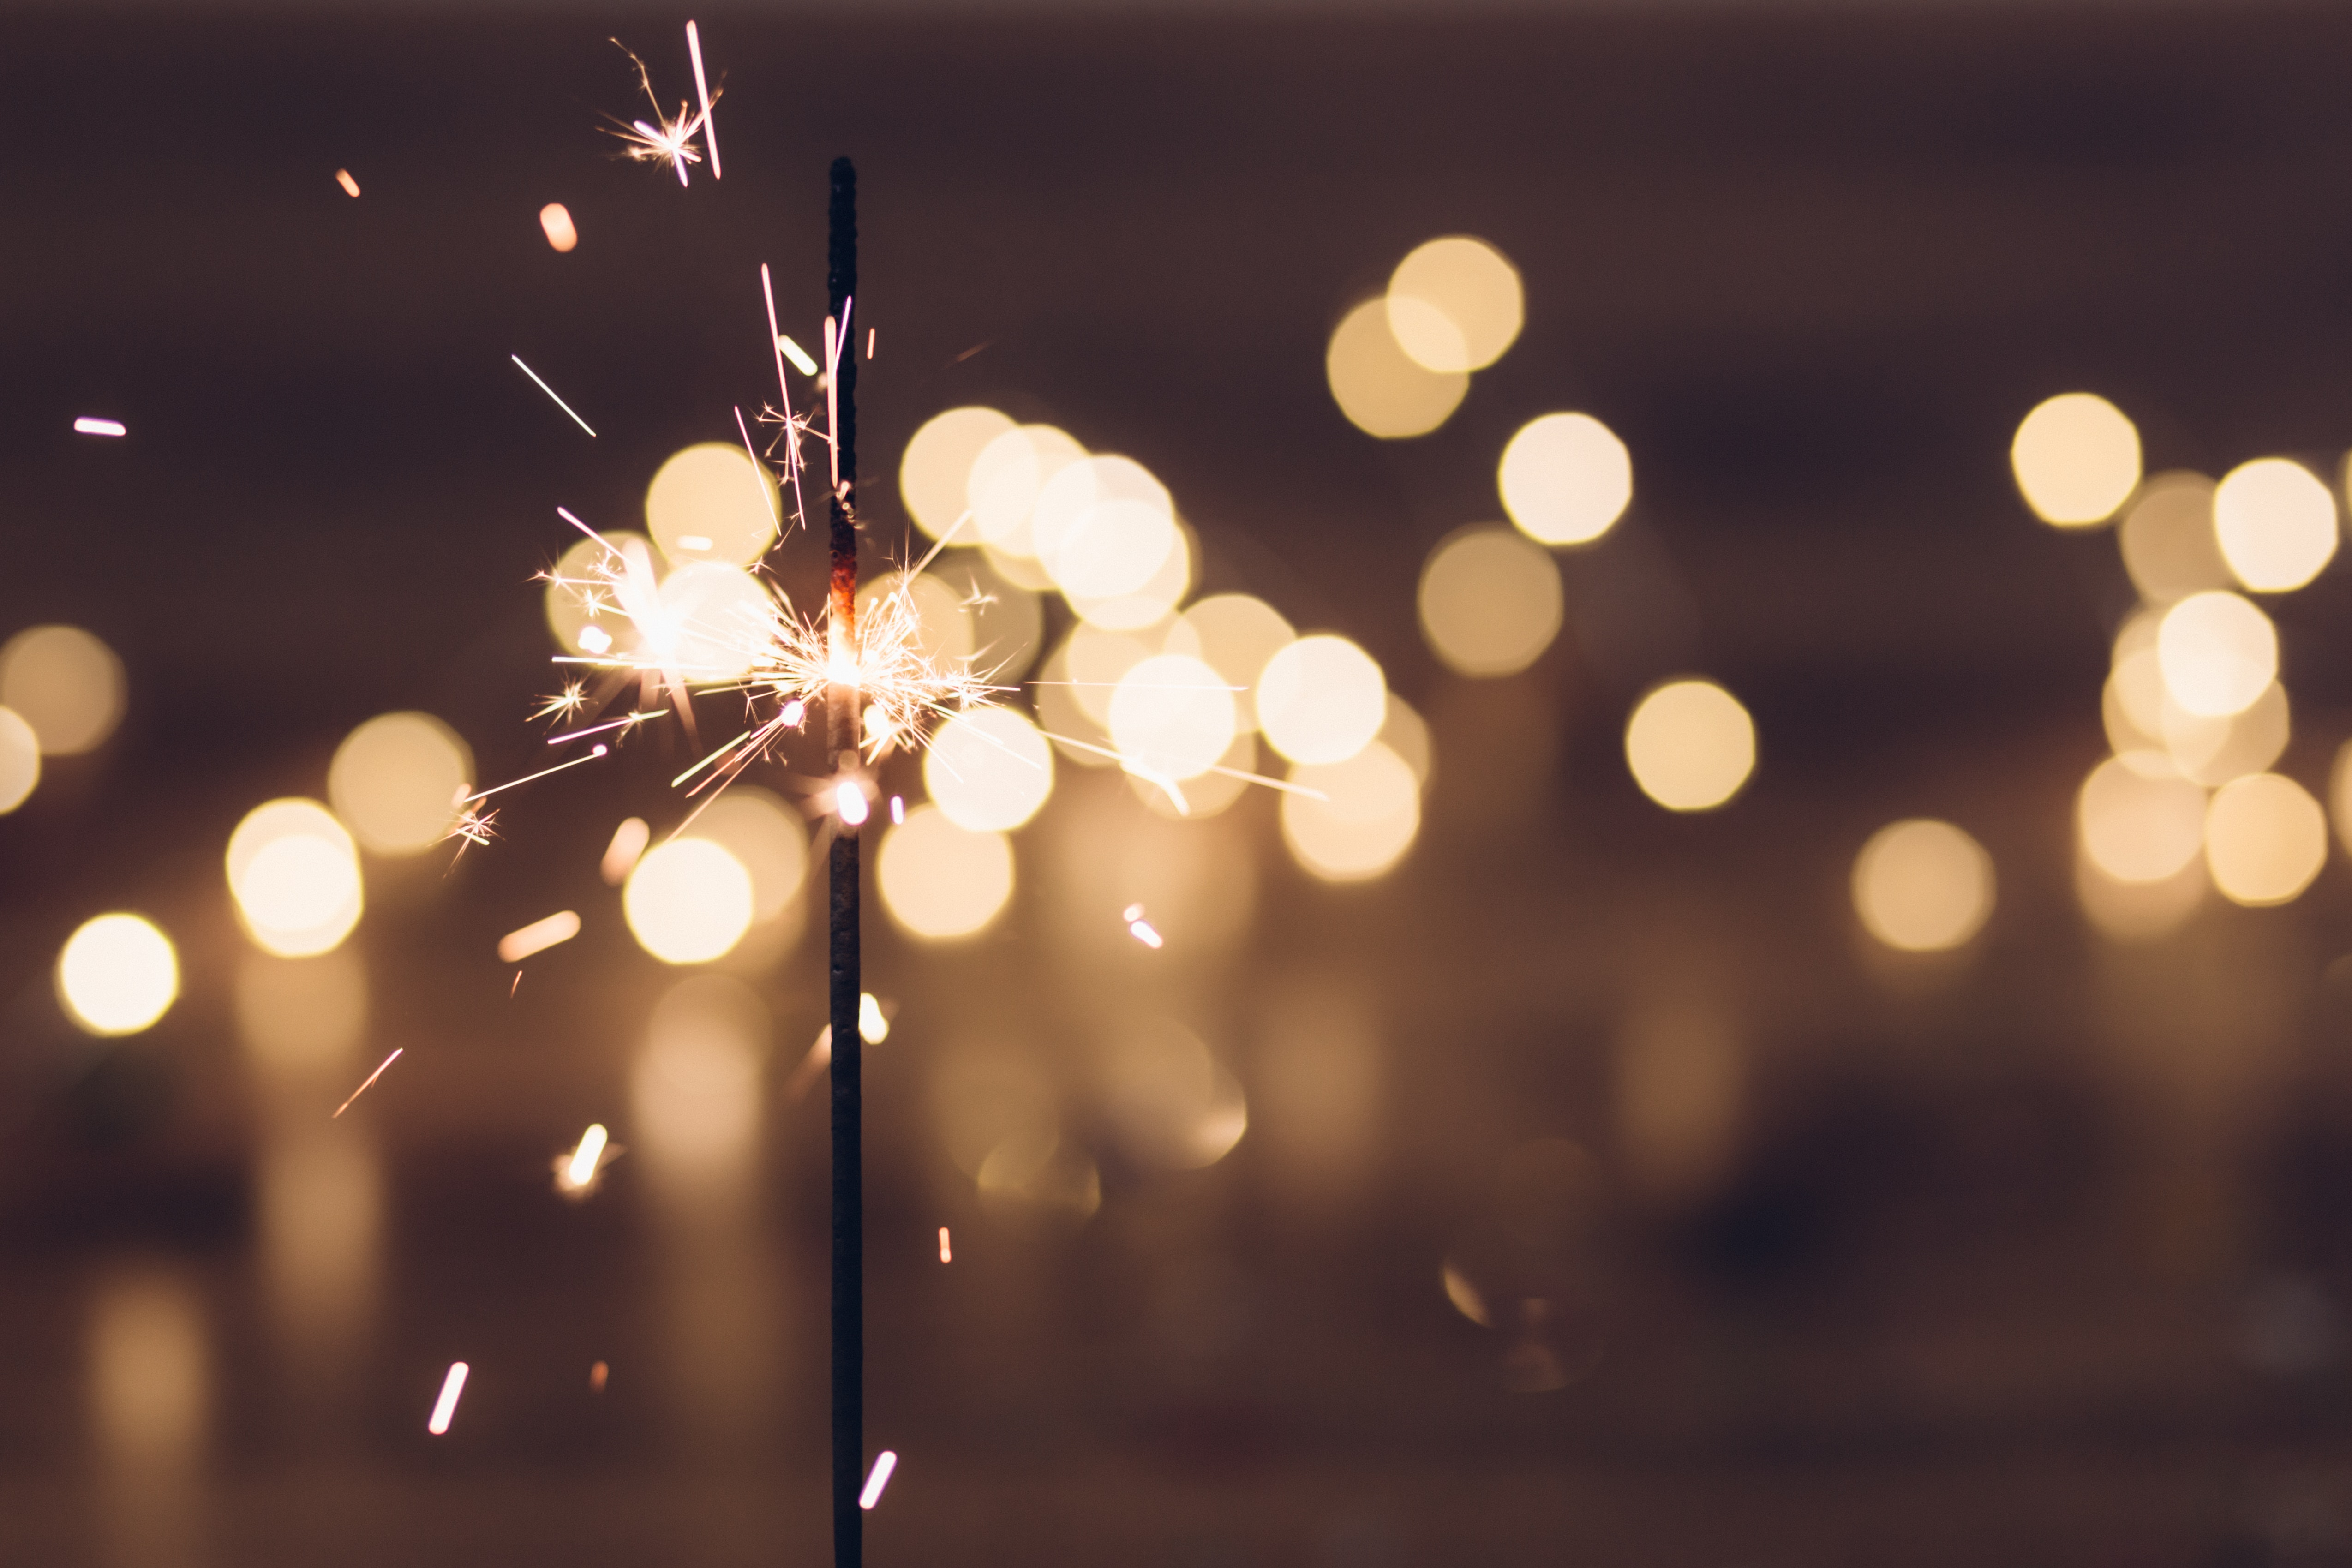 New Year's travel resolutions. New Years sparkler